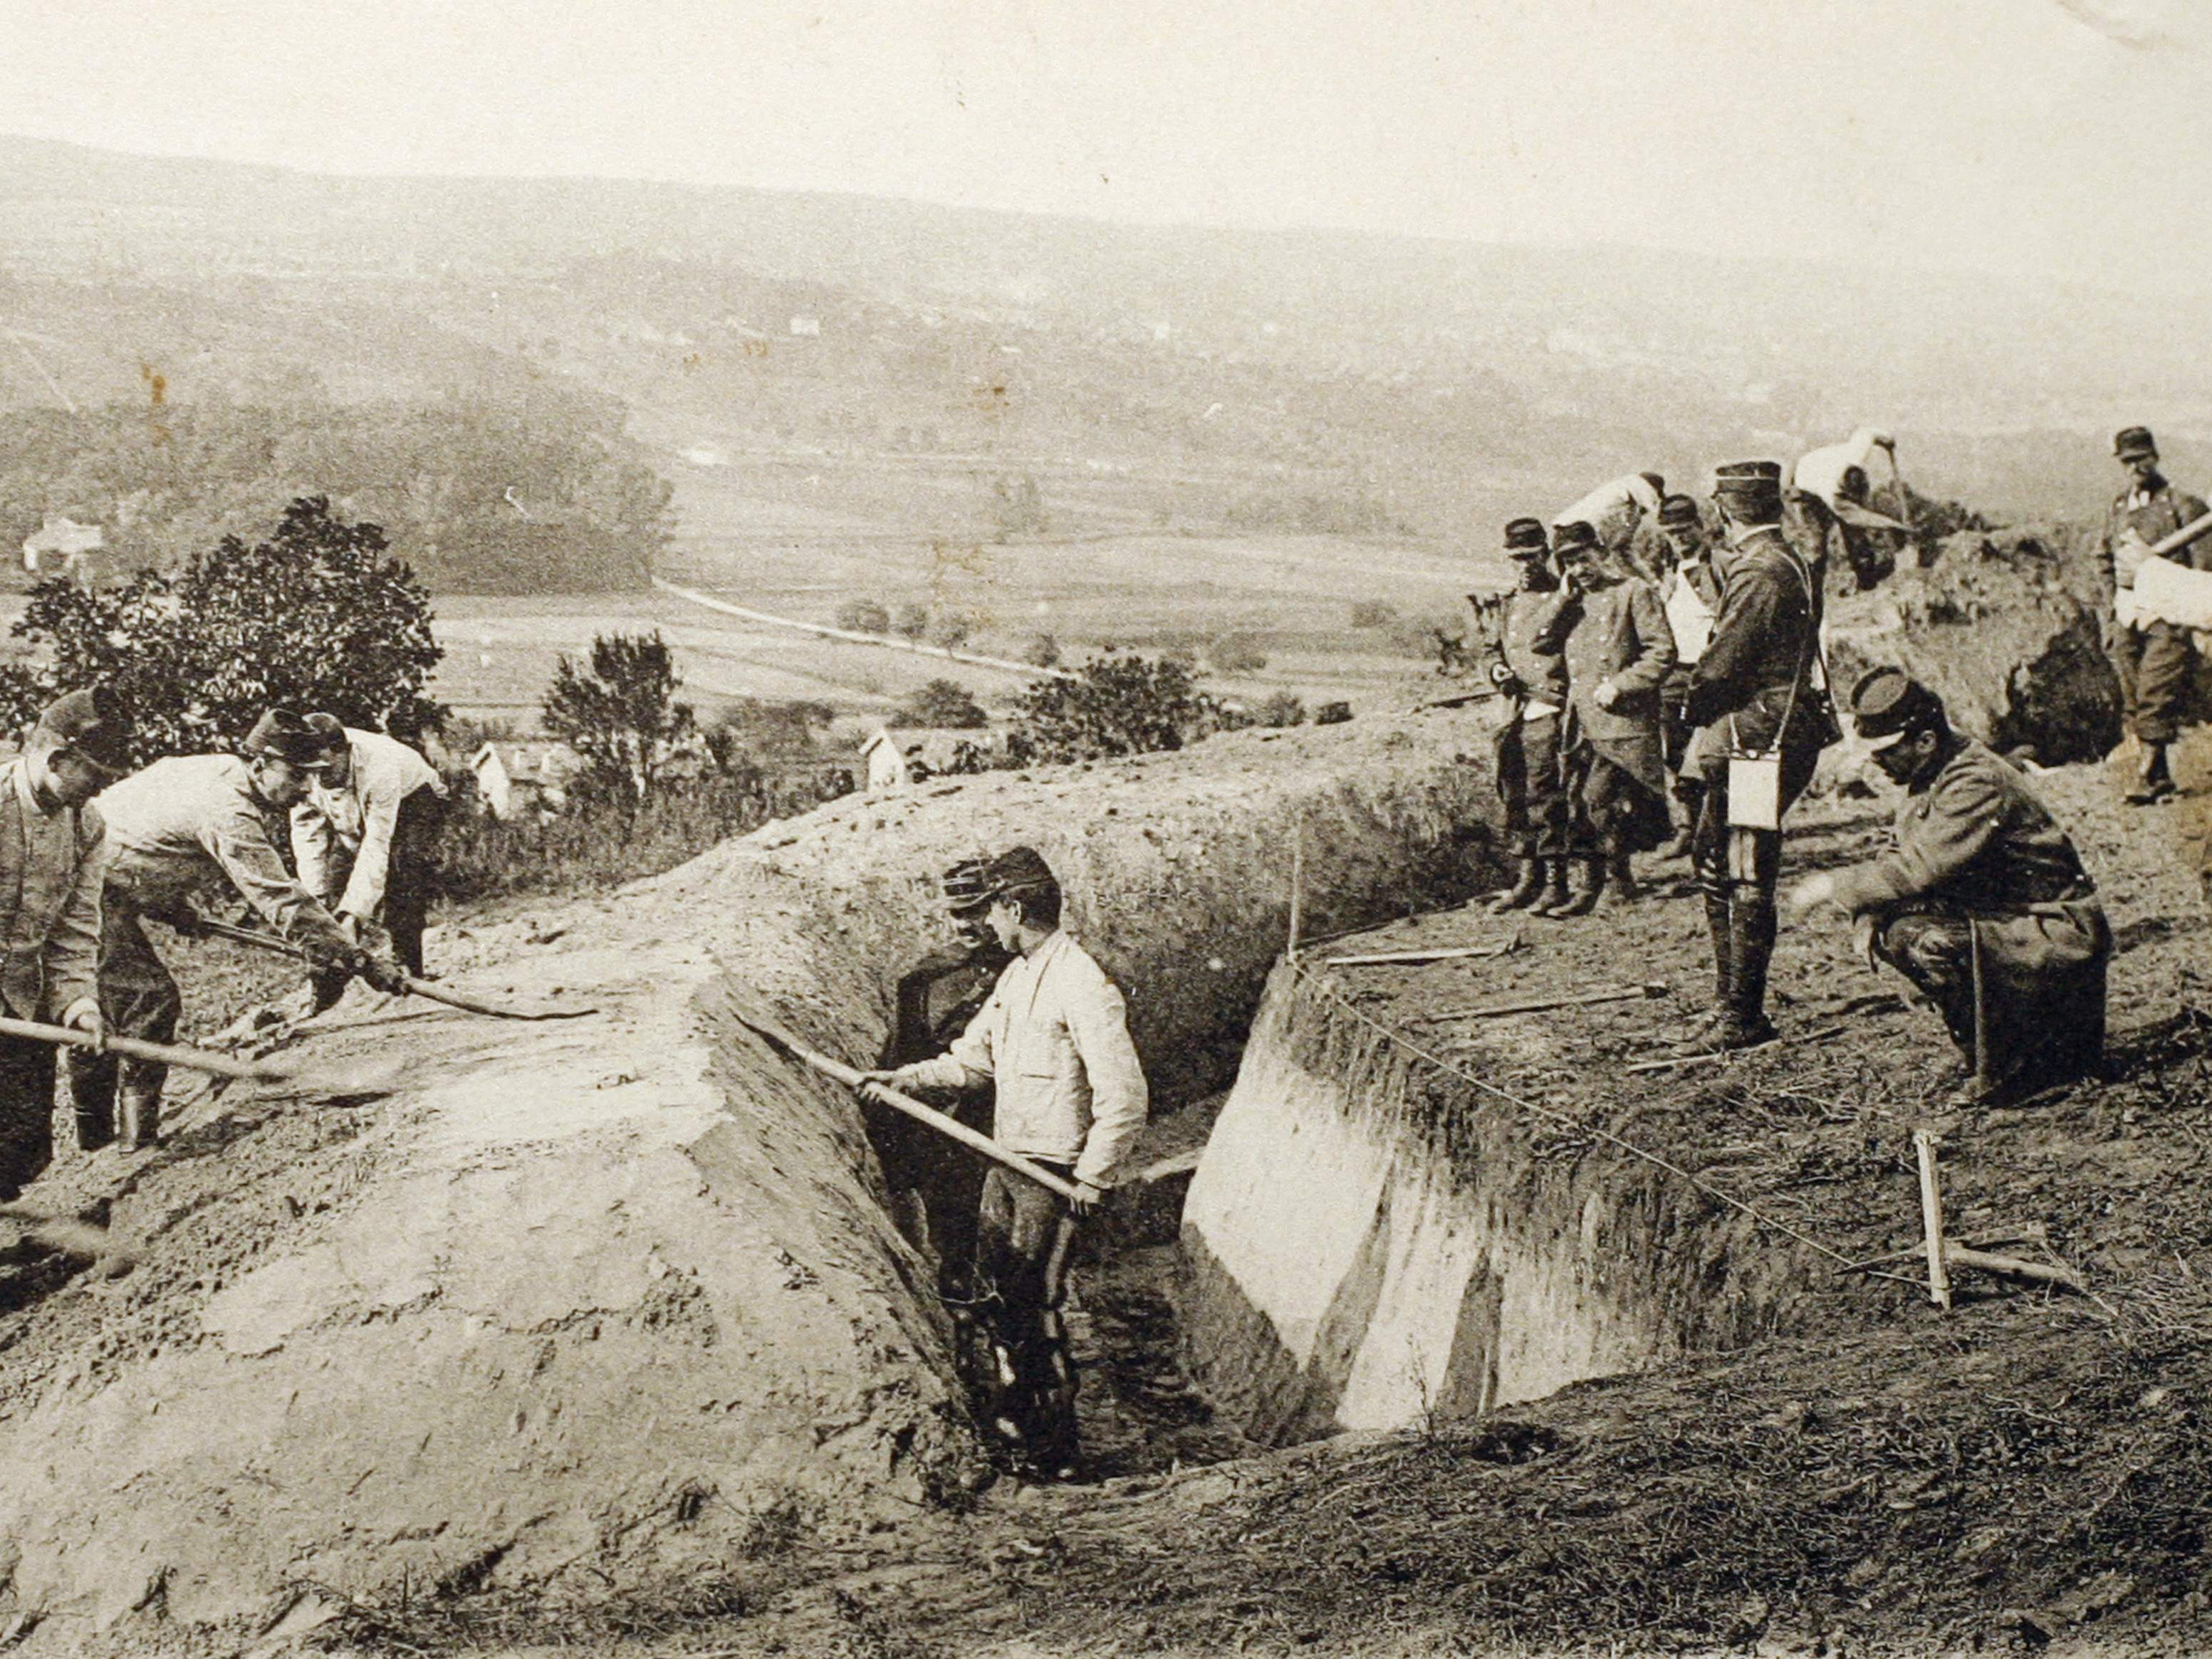 This postcard shows French soldiers digging a trench during the First Battle of the Marne during the World War I.